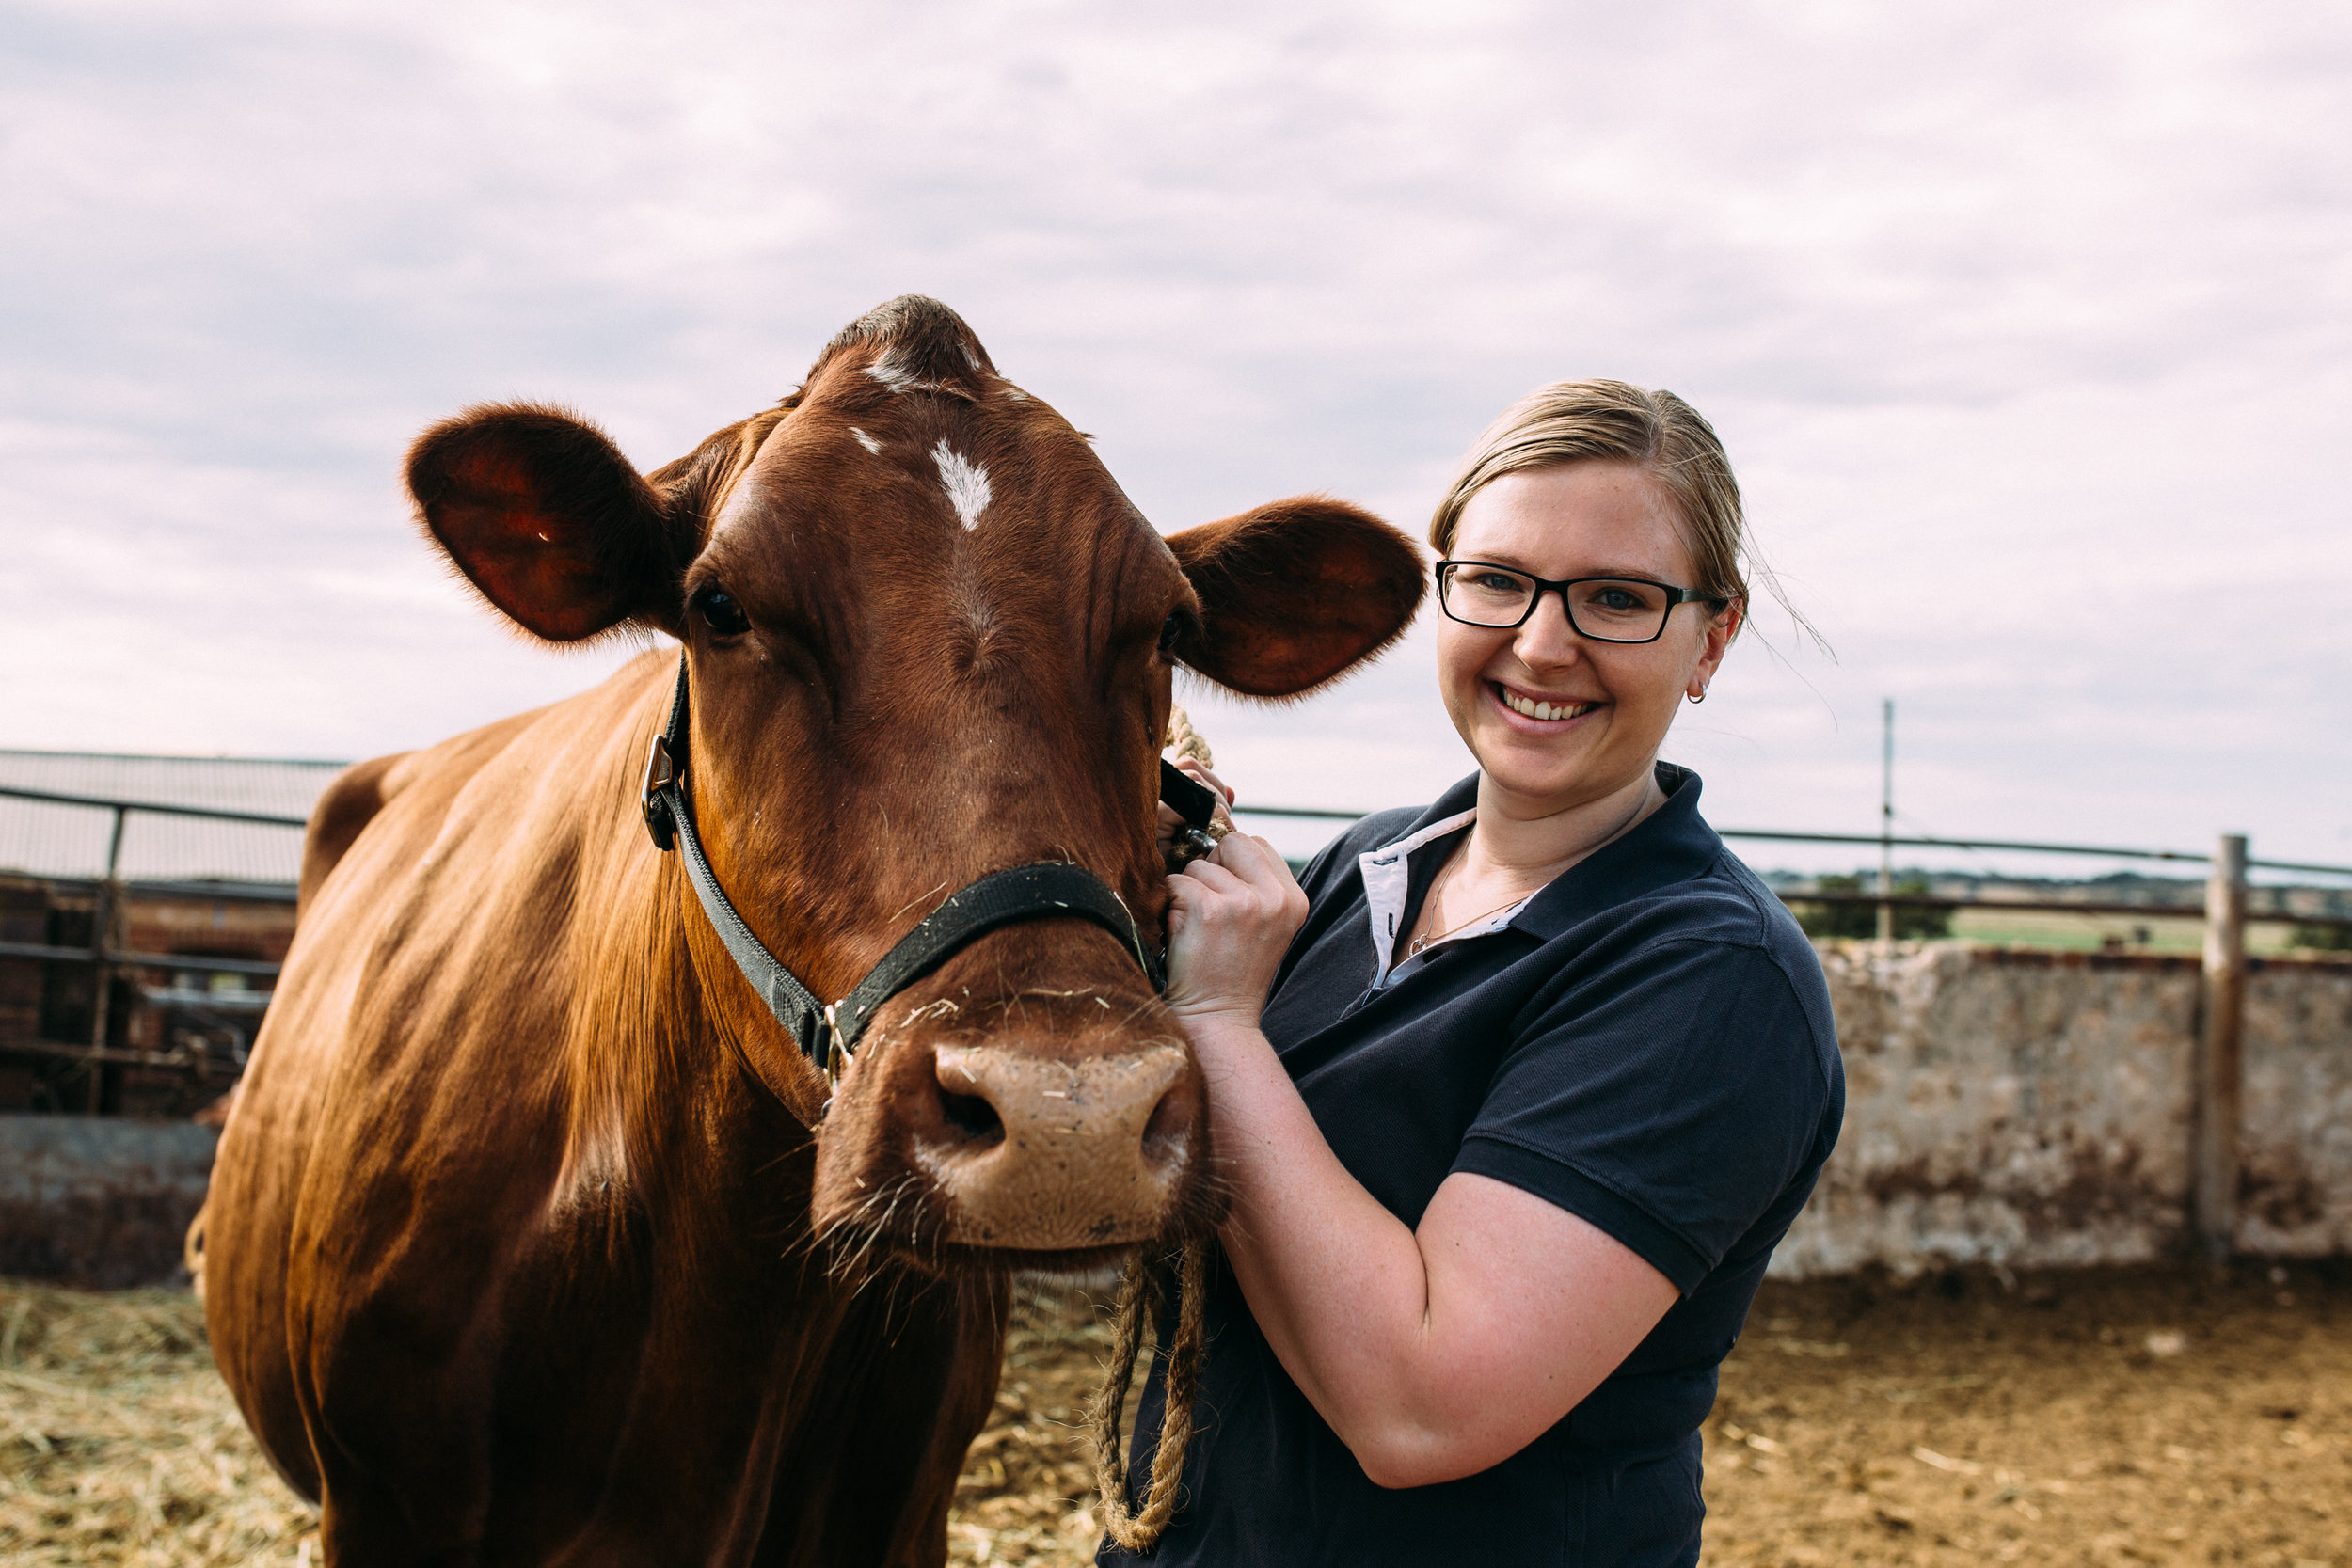 Emily with her favourite cow, Begonia, photographed by Catherine Forge, Murray Bridge, Source: Museums Victoria: https://collections.museumvictoria.com.au/items/2243754